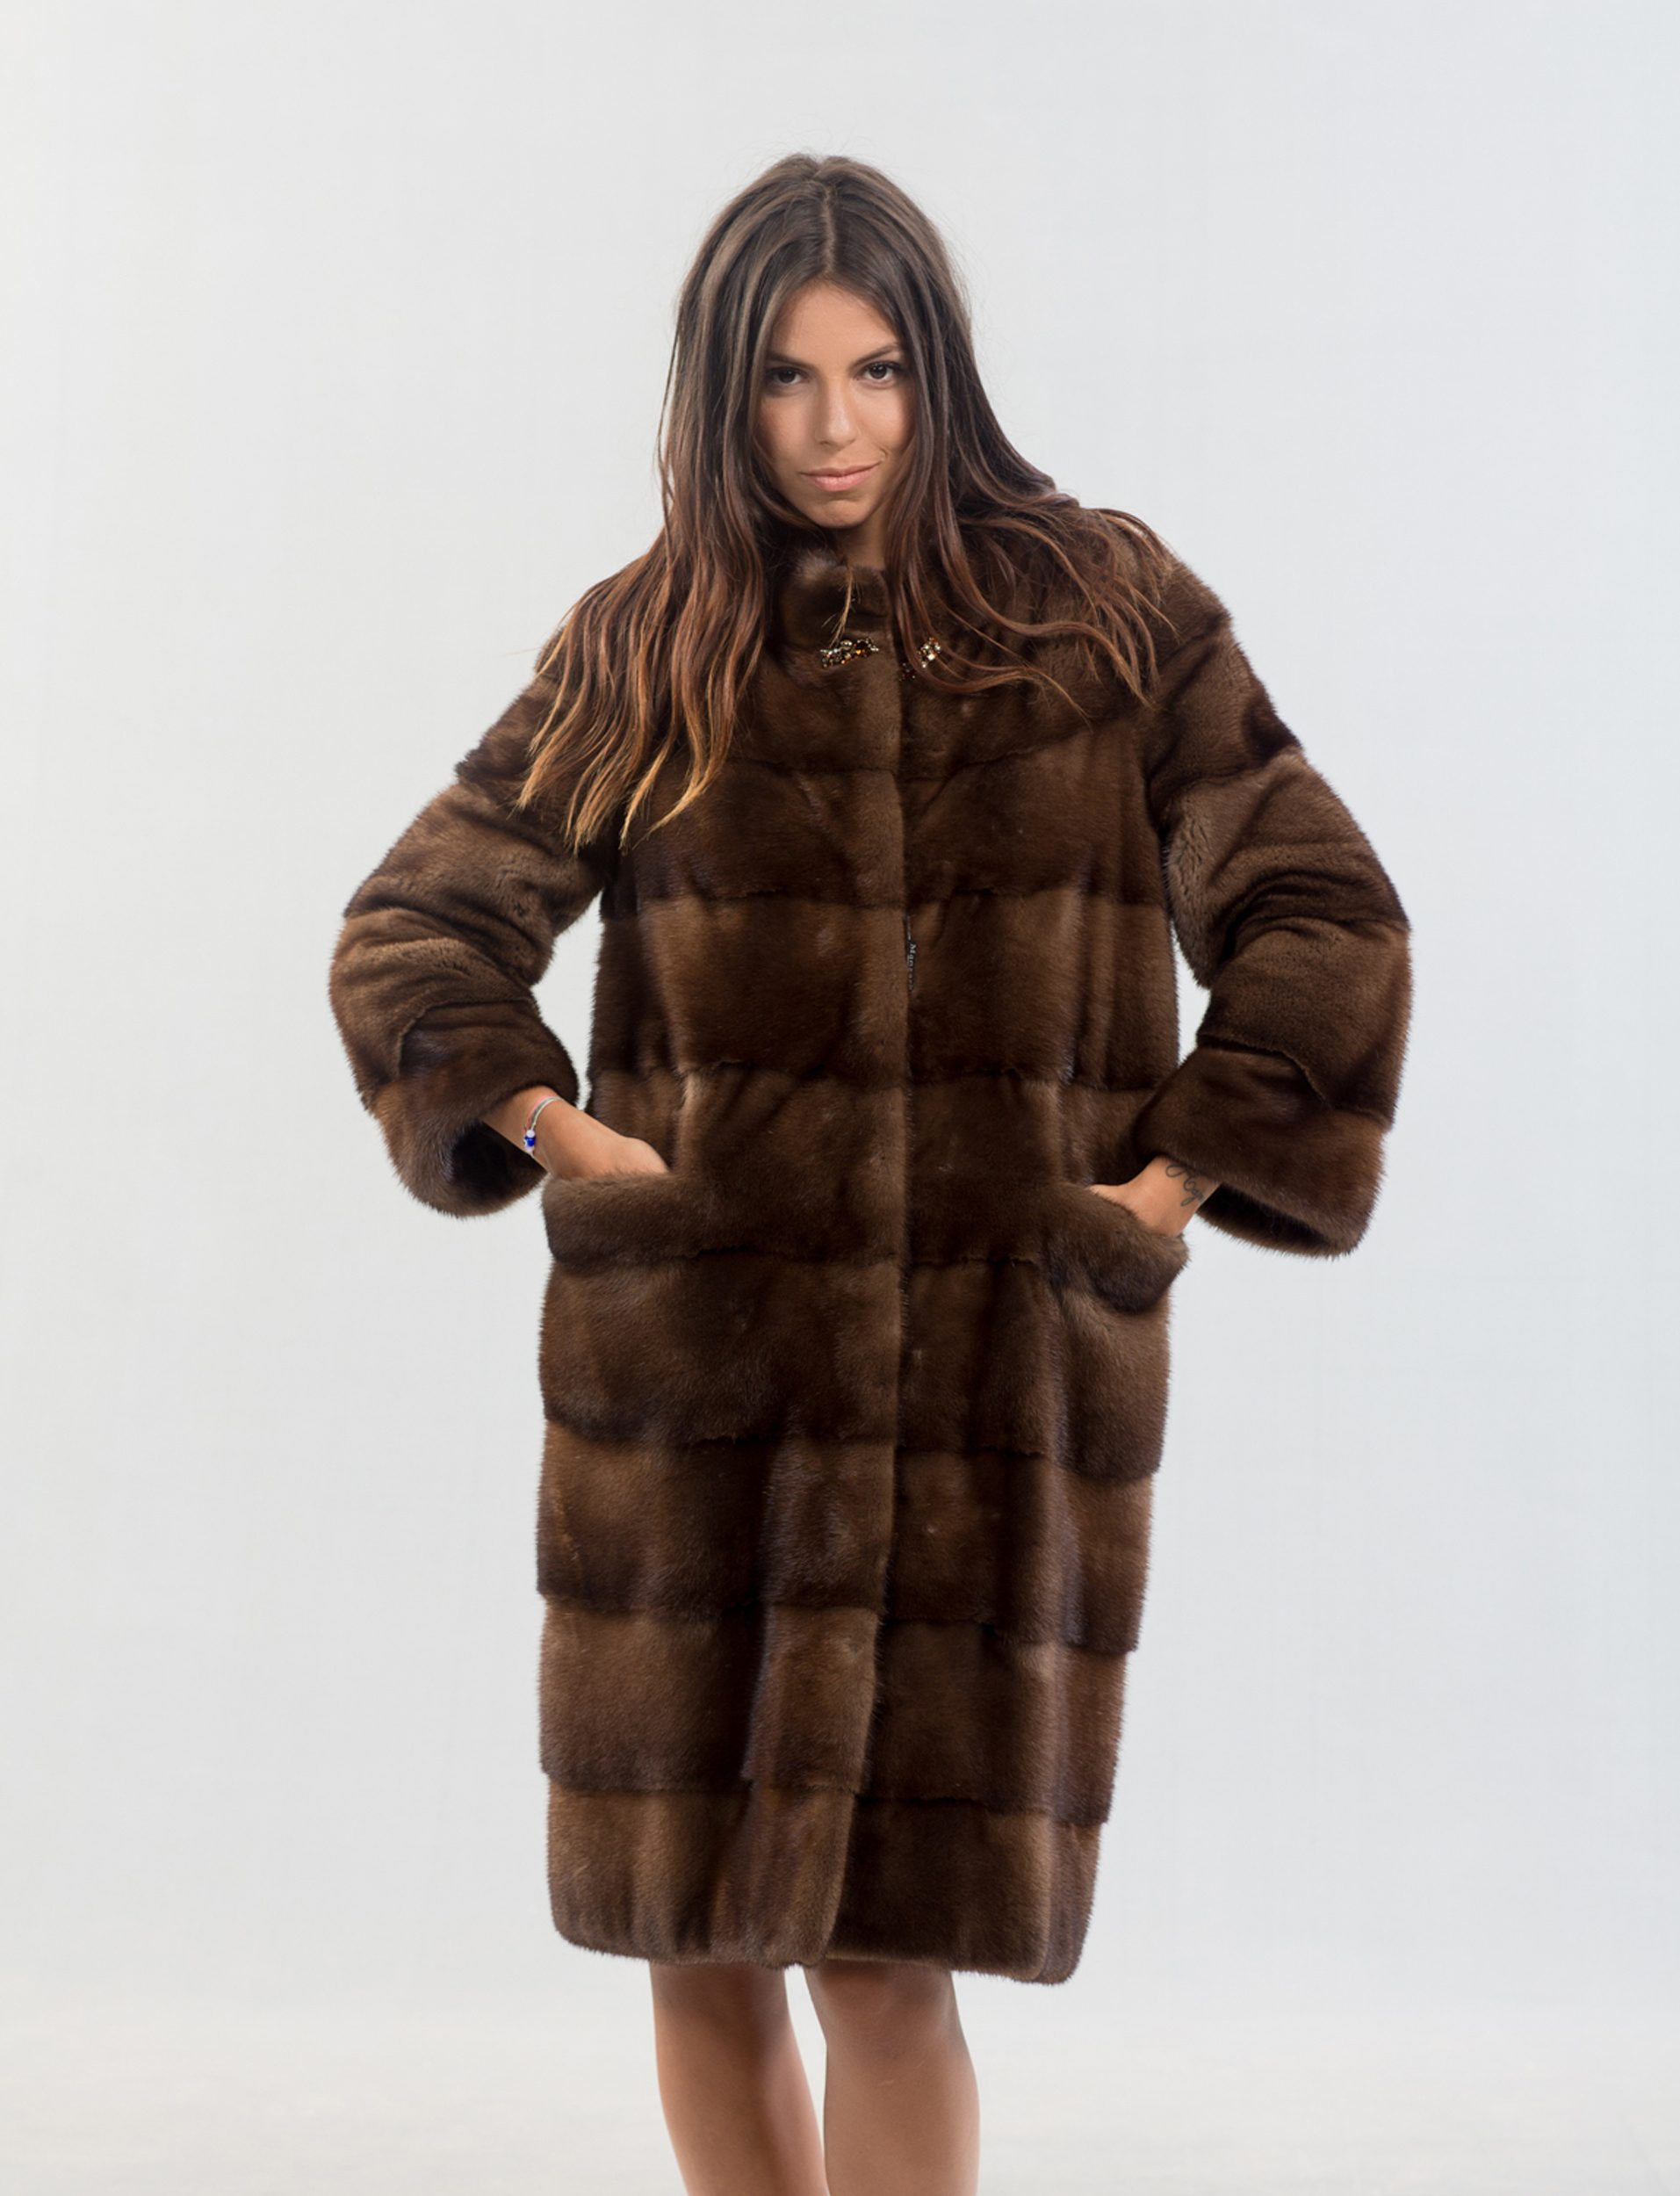 a954298a1c0 Sc Glow Mink Fur Coat. 100% Real Fur Coats and Accessories.